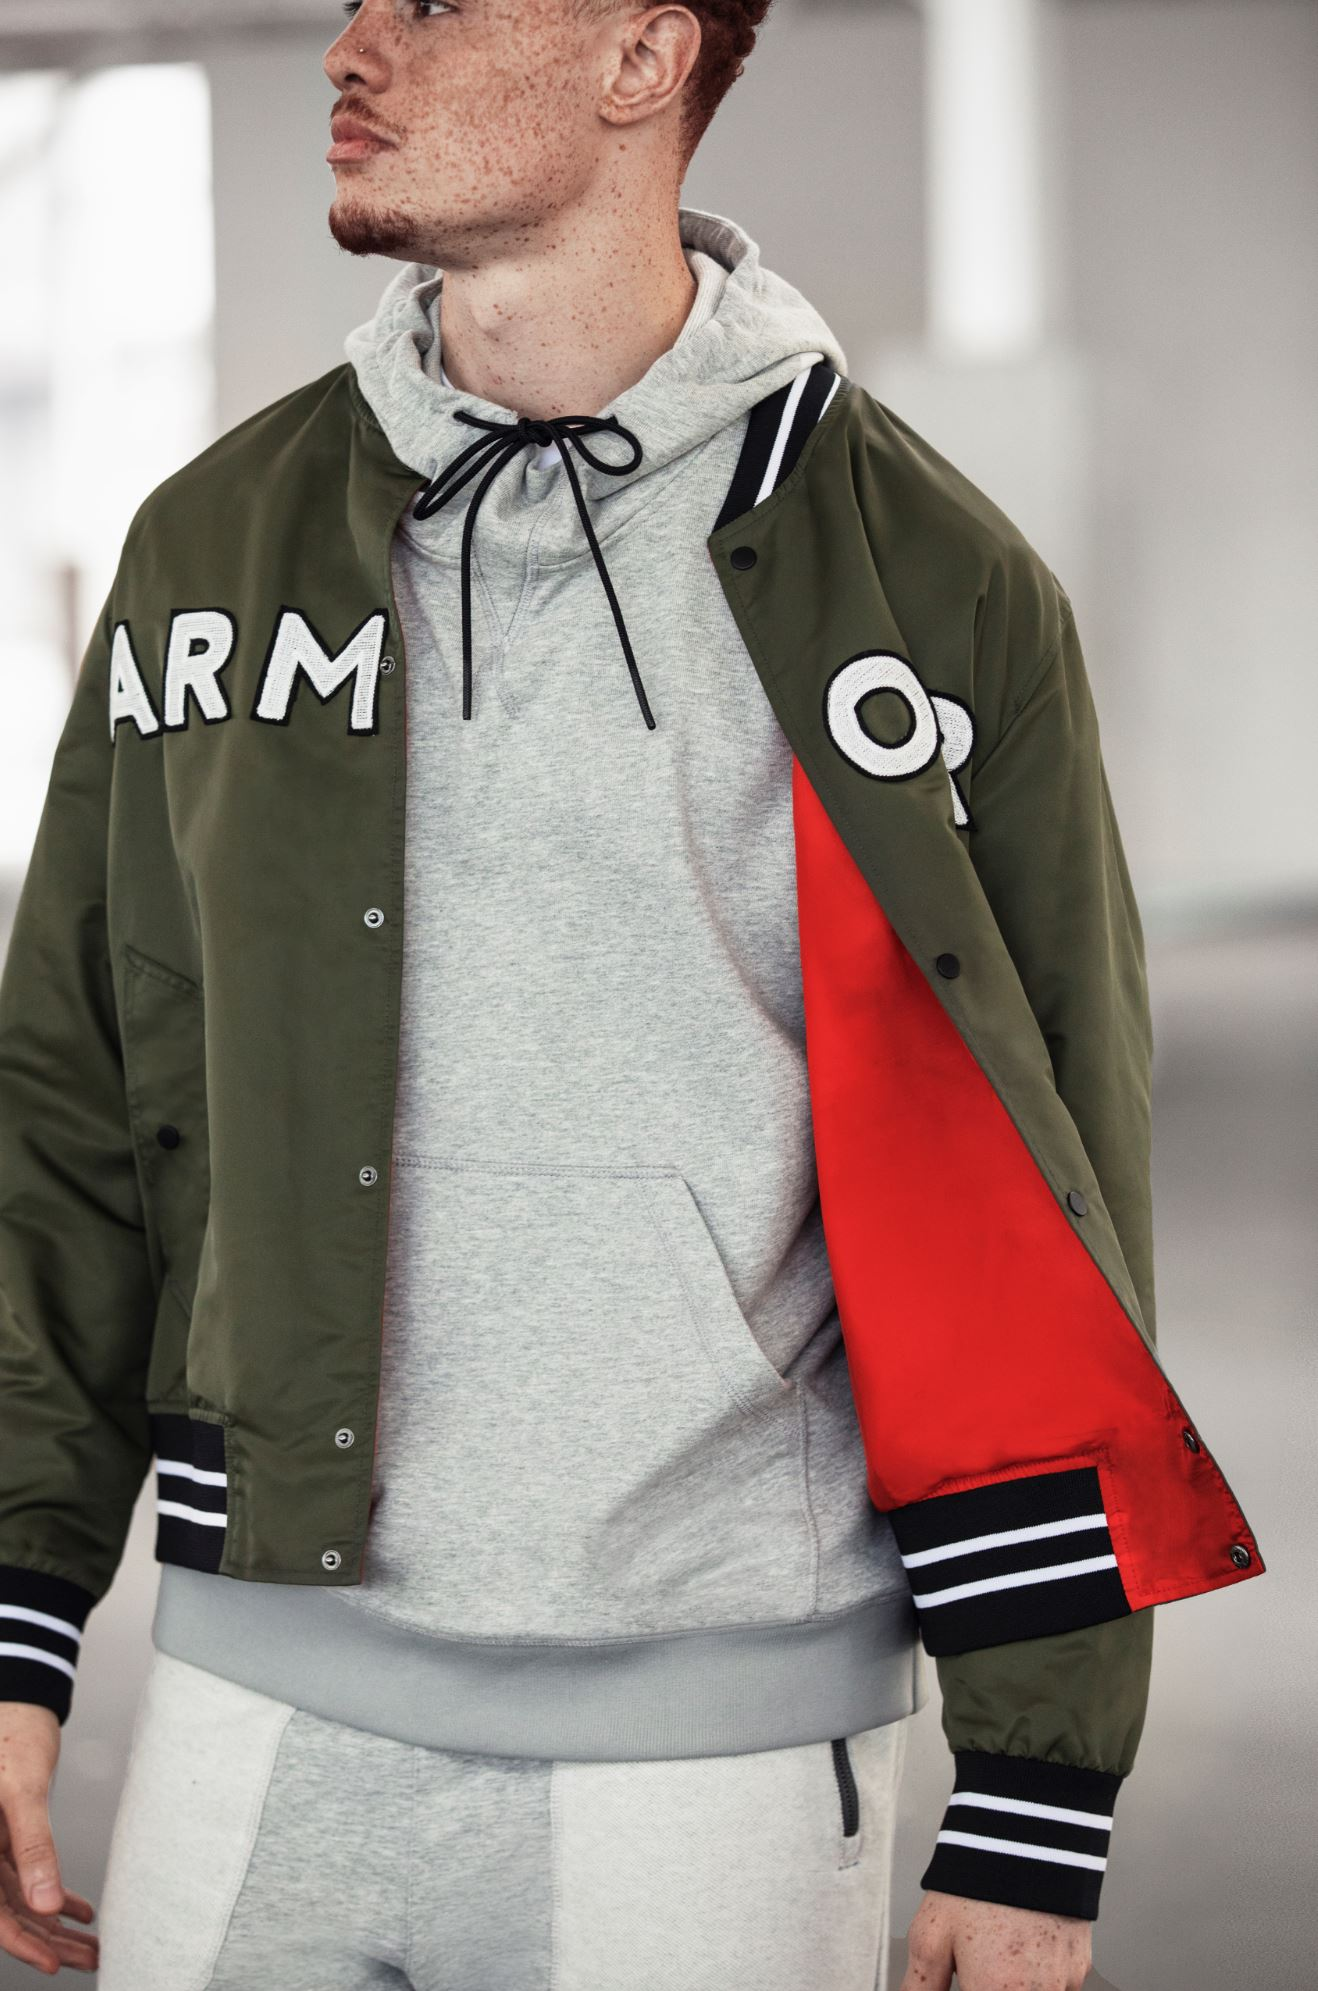 under armour UA exclusives be seen collection bomber